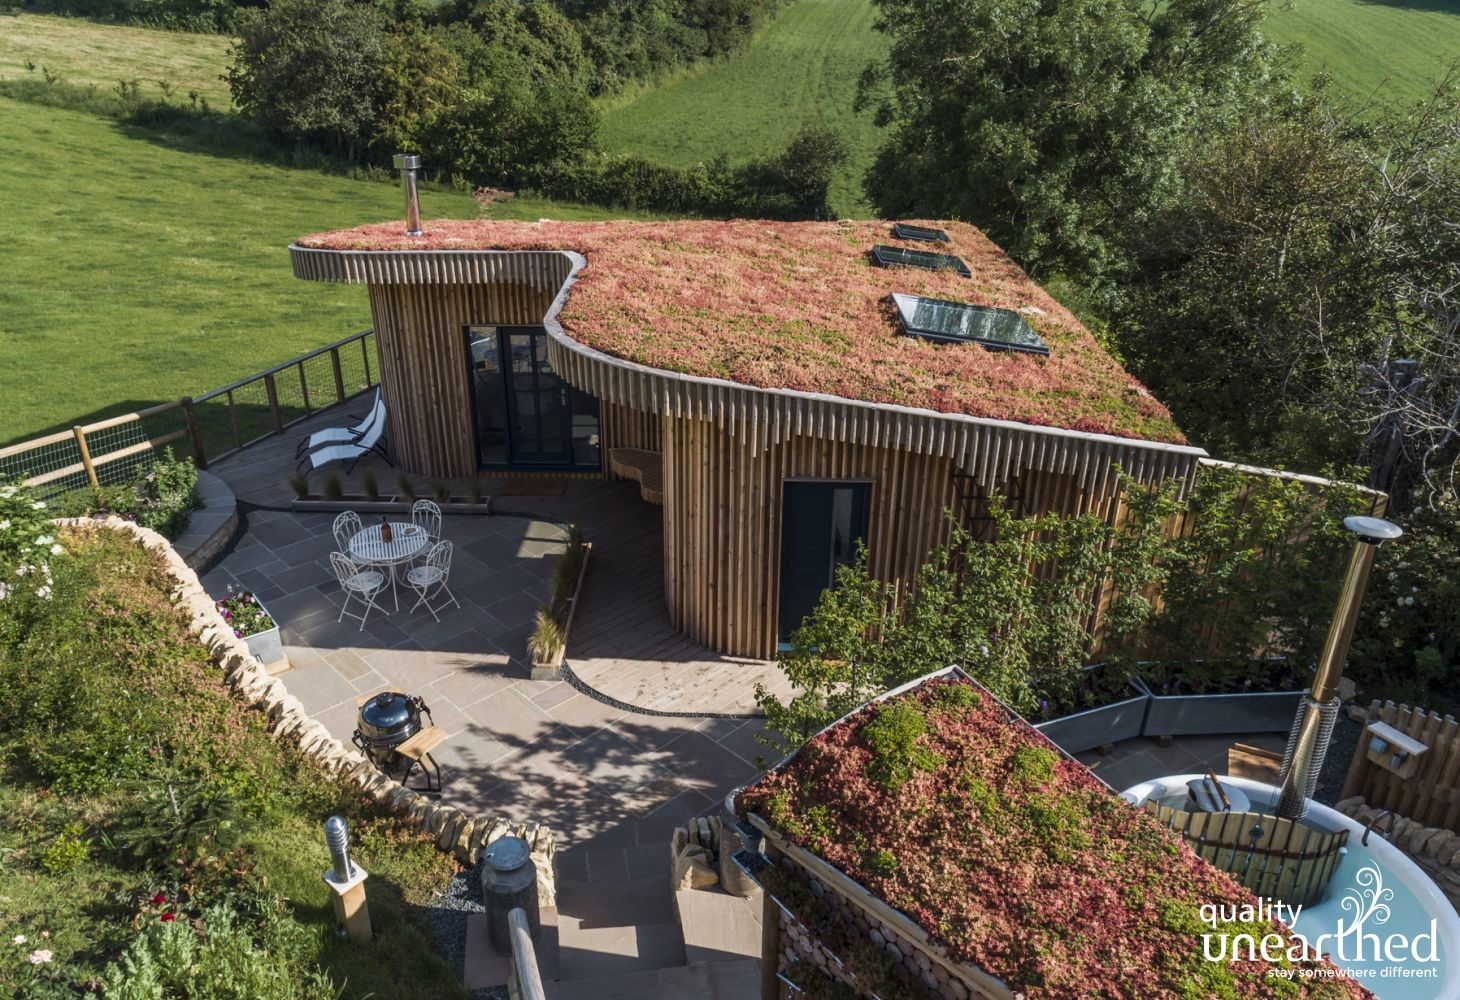 The wooden cabin sits in the hills with the Malvern countryside surrounding it